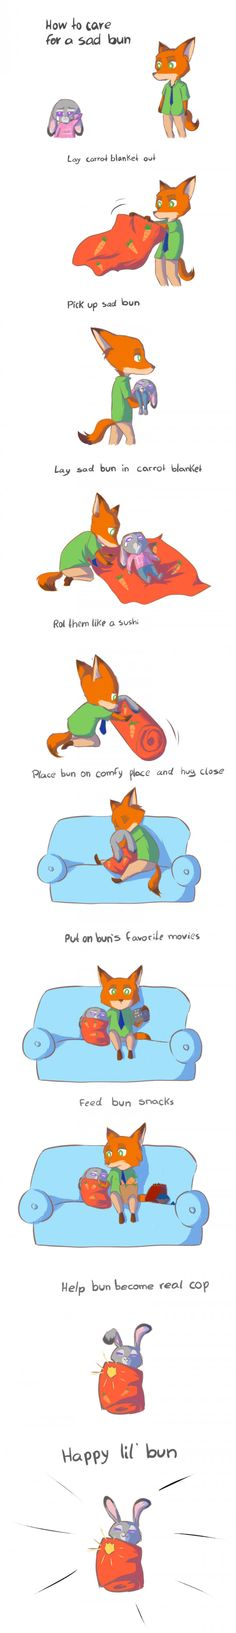 How to care for a sad bun (Zootopia Edition, DaniiScream)